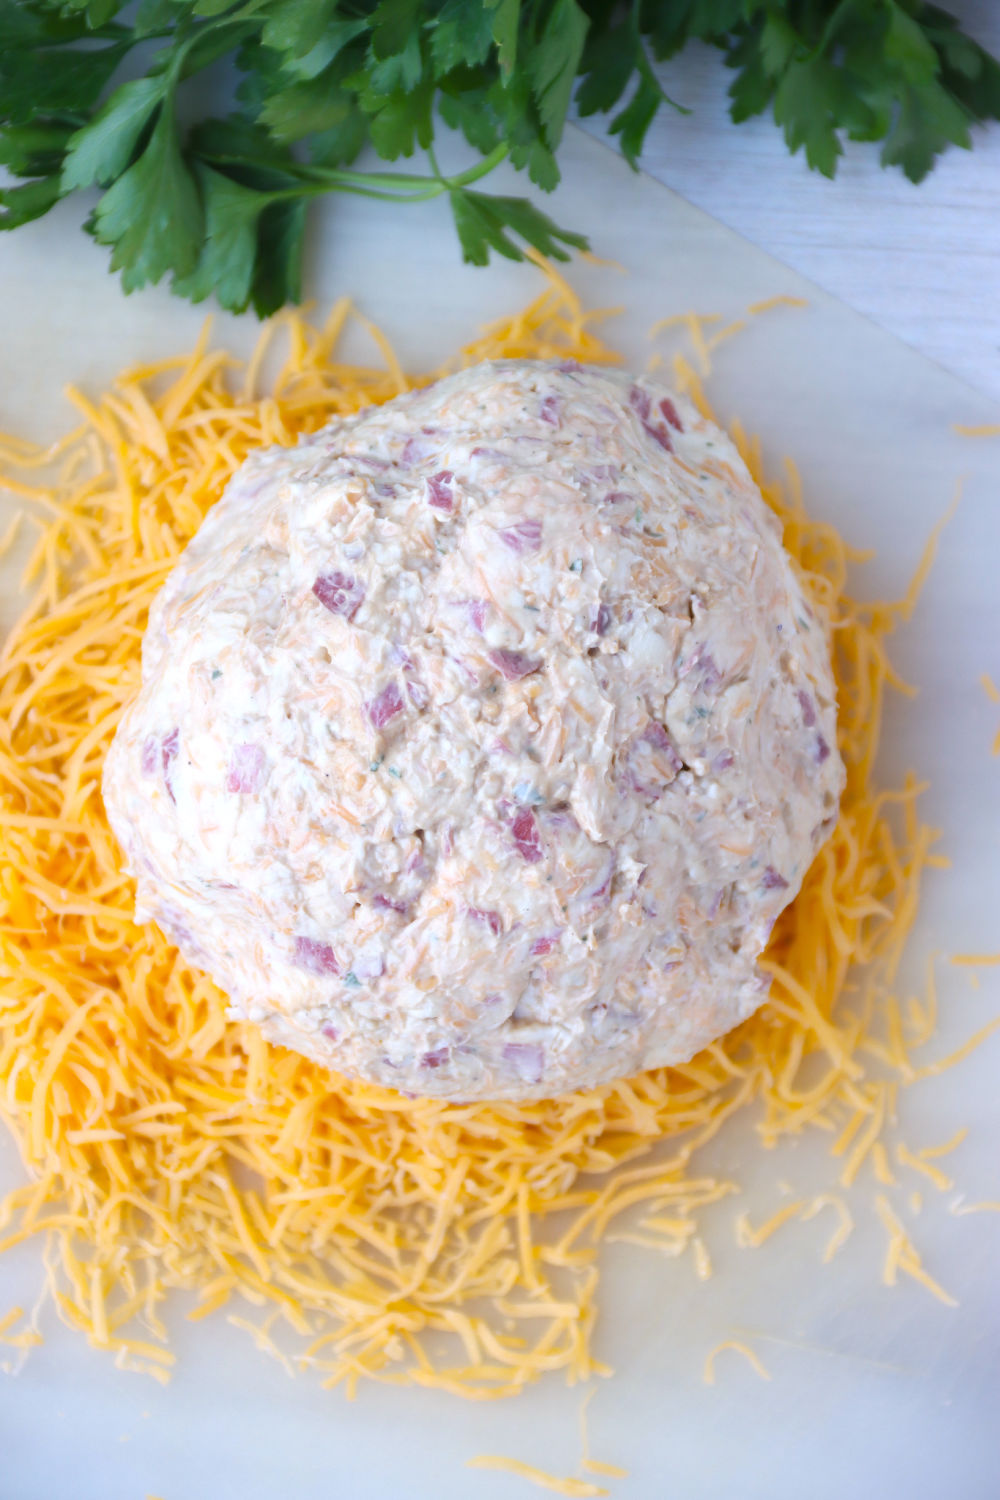 cheese ball sitting on top of pile of shredded cheese